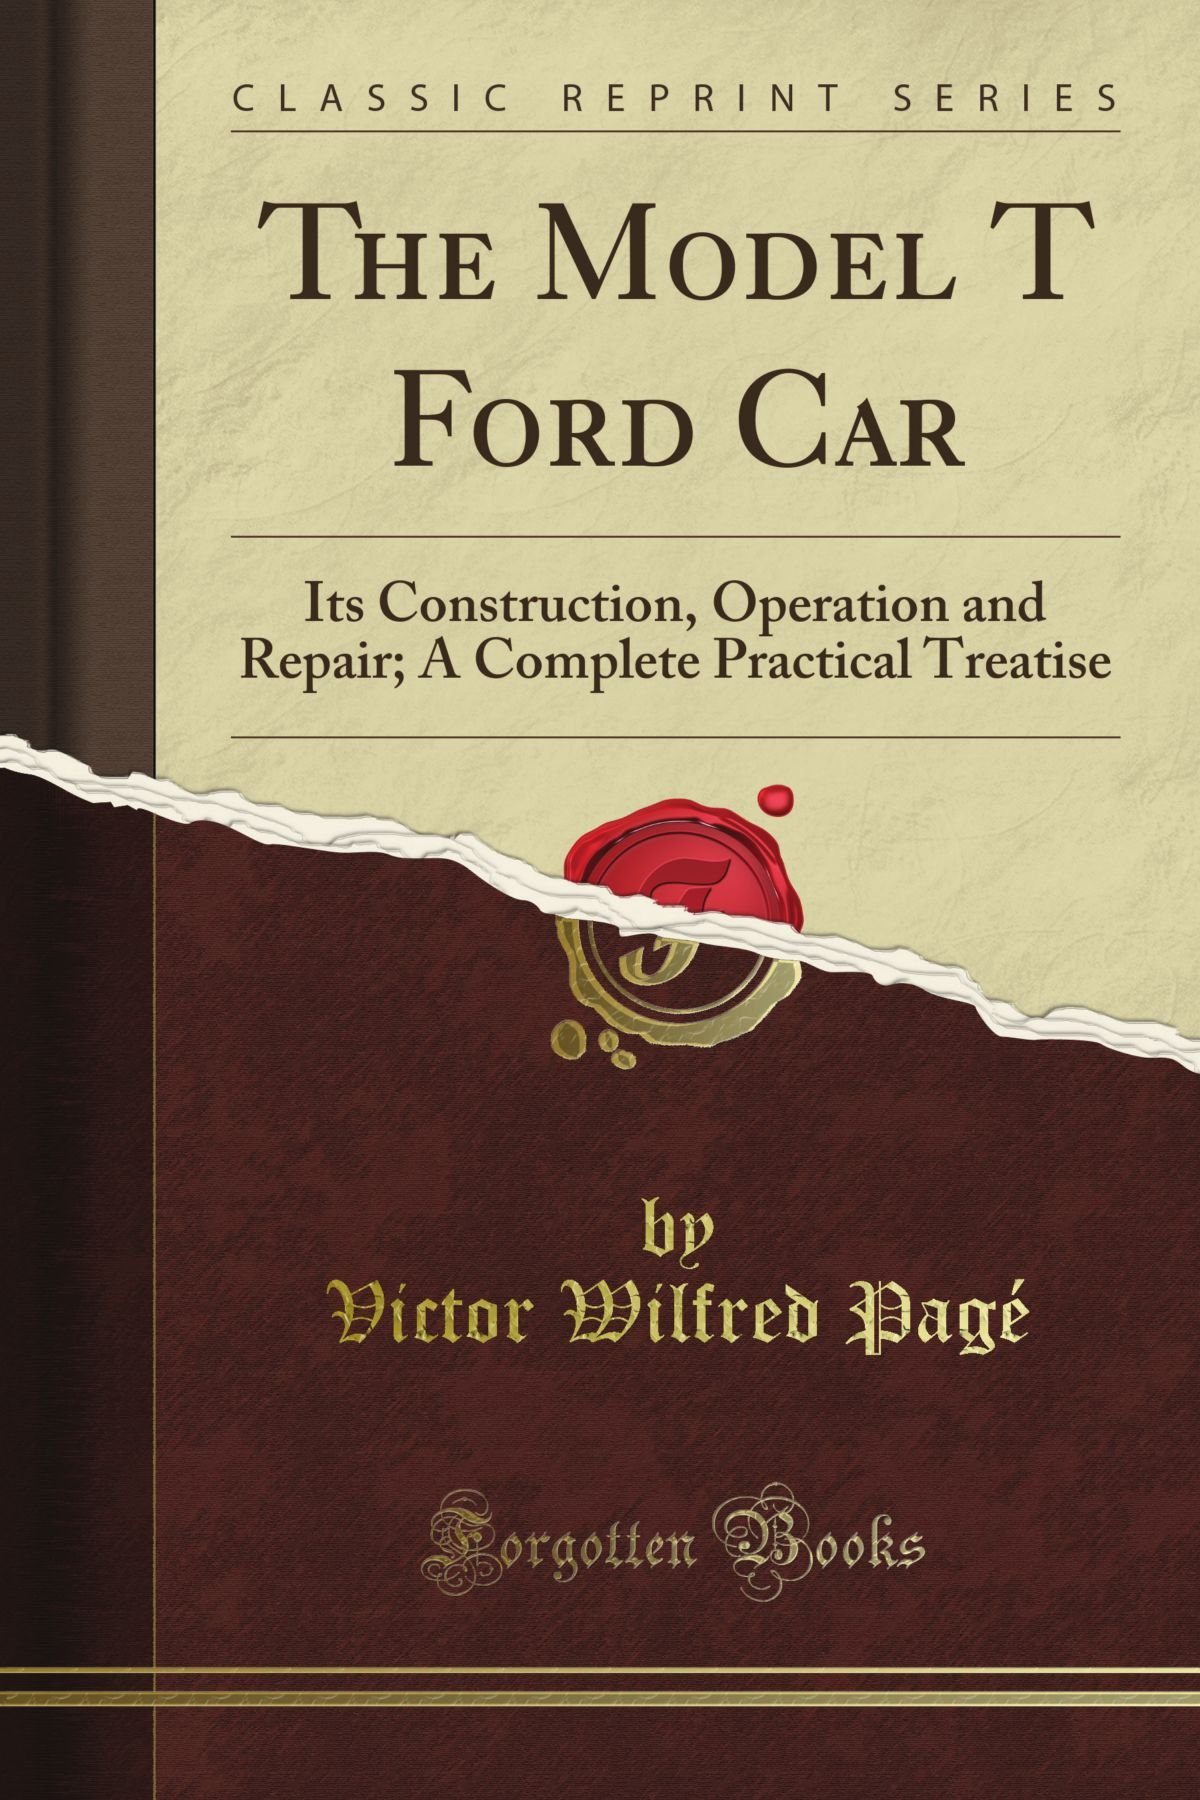 the-model-t-ford-car-its-construction-operation-and-repair-a-complete-practical-treatise-classic-reprint